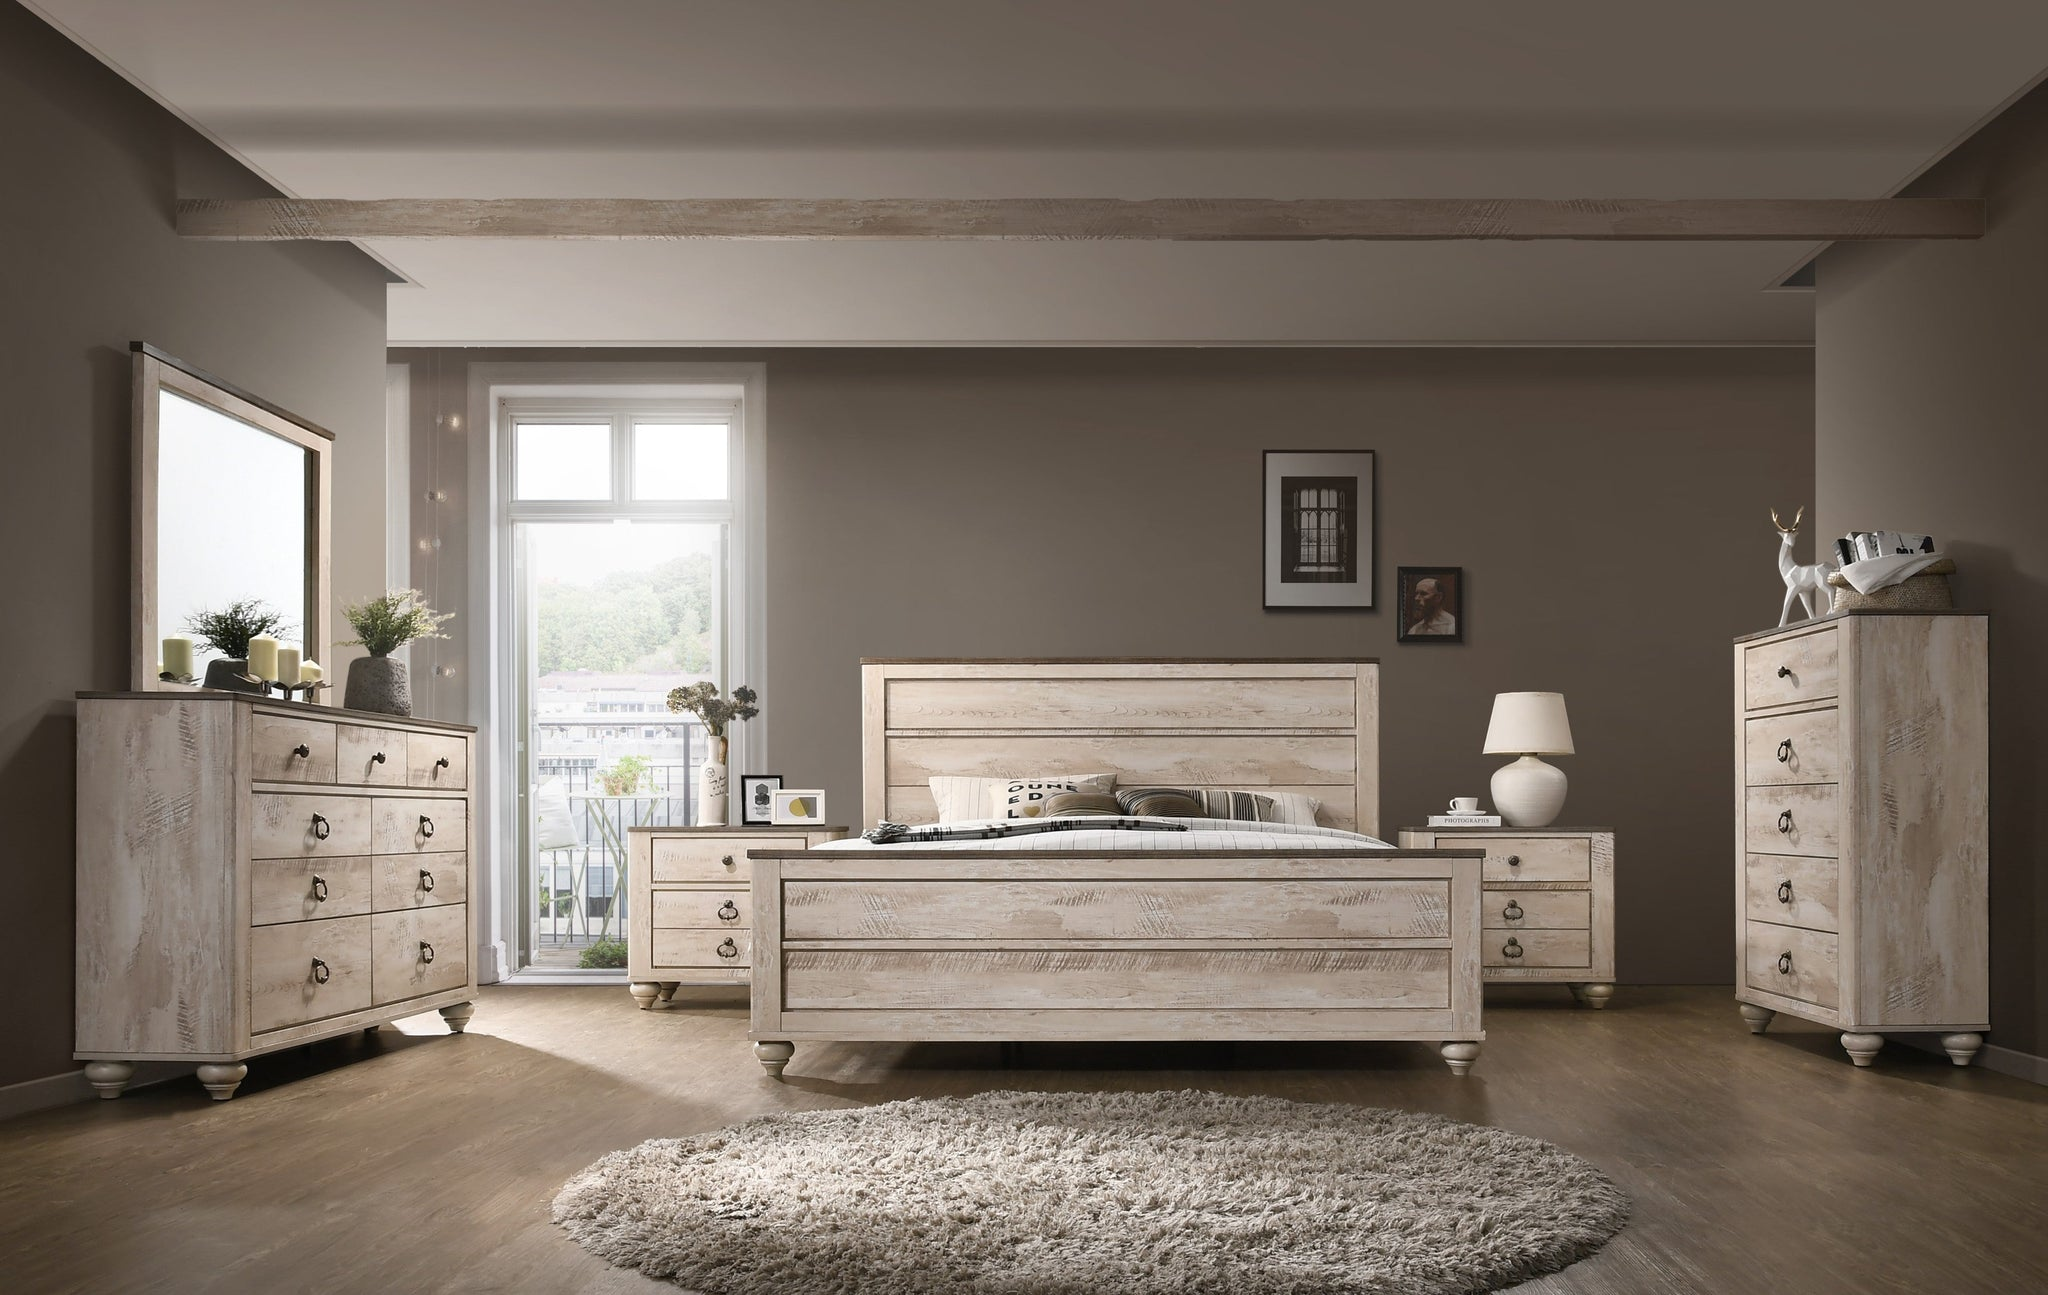 Imerland Contemporary White Wash Finish Bedroom Set, Queen & King Bed, Dresser, Mirror, Nightstands, Chest